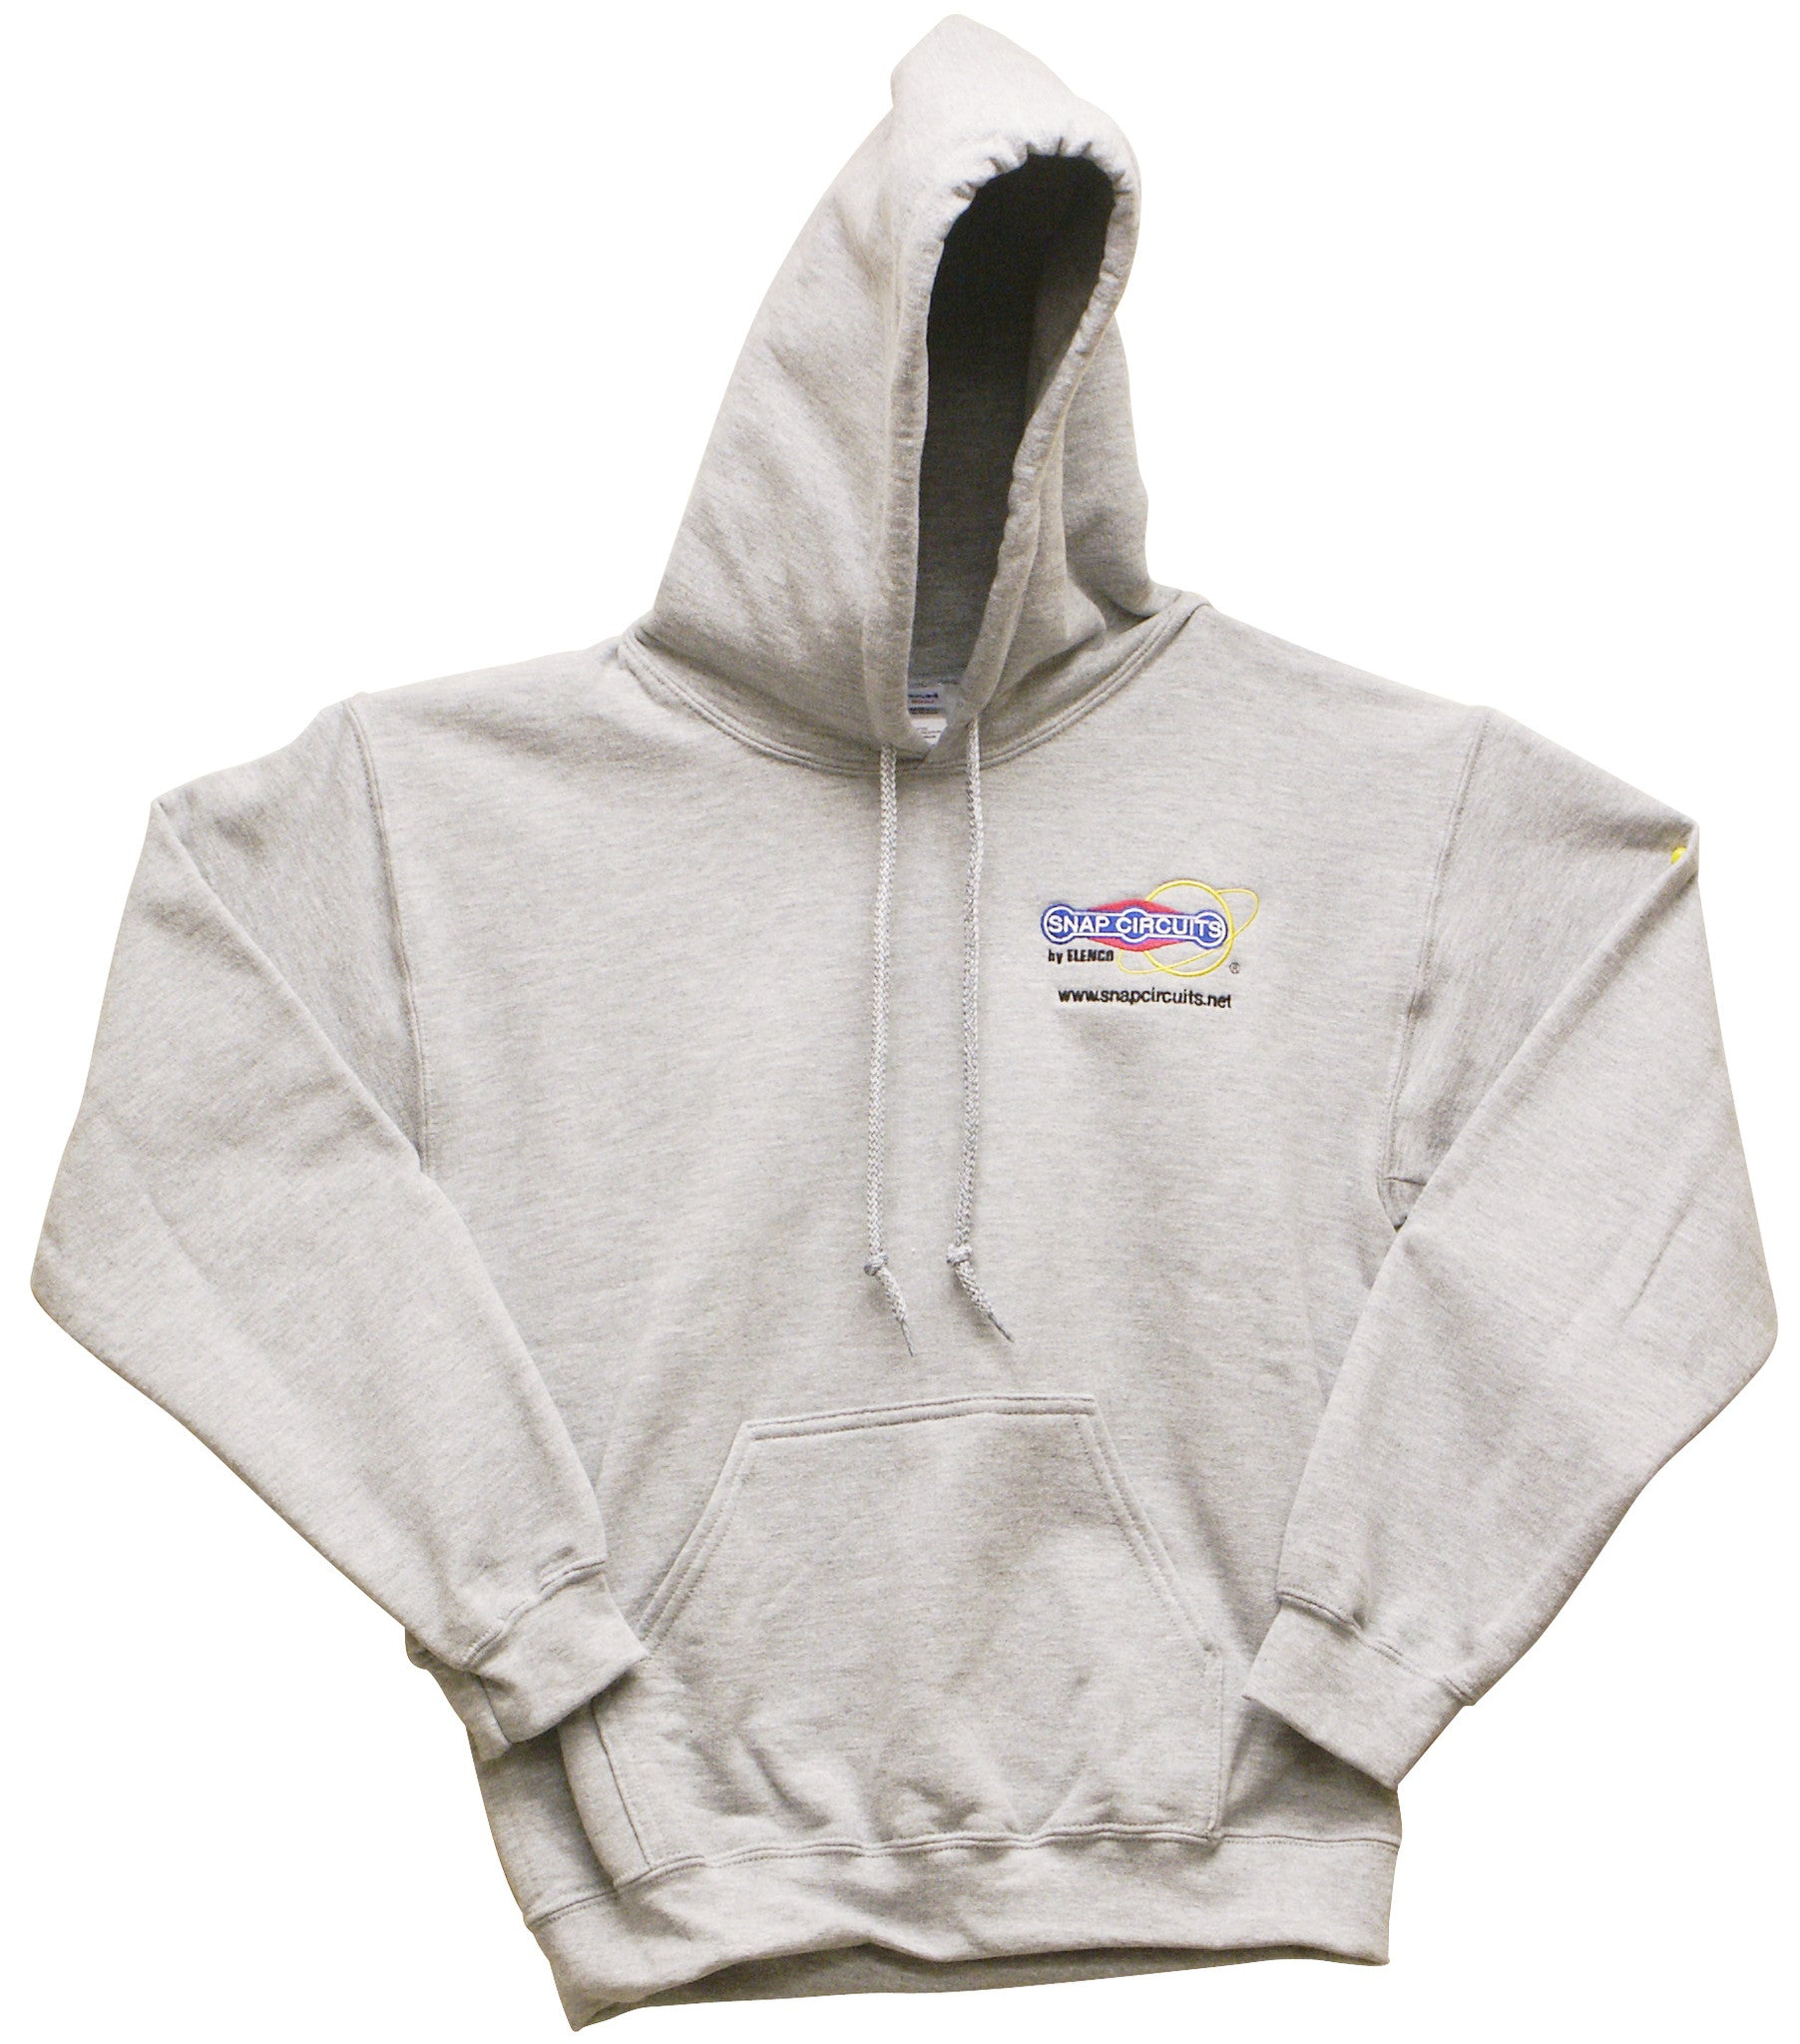 Https Daily Products 0 Elenco Scs185 Snap Circuits Sound Sweatshirt Largejpegv1511509309